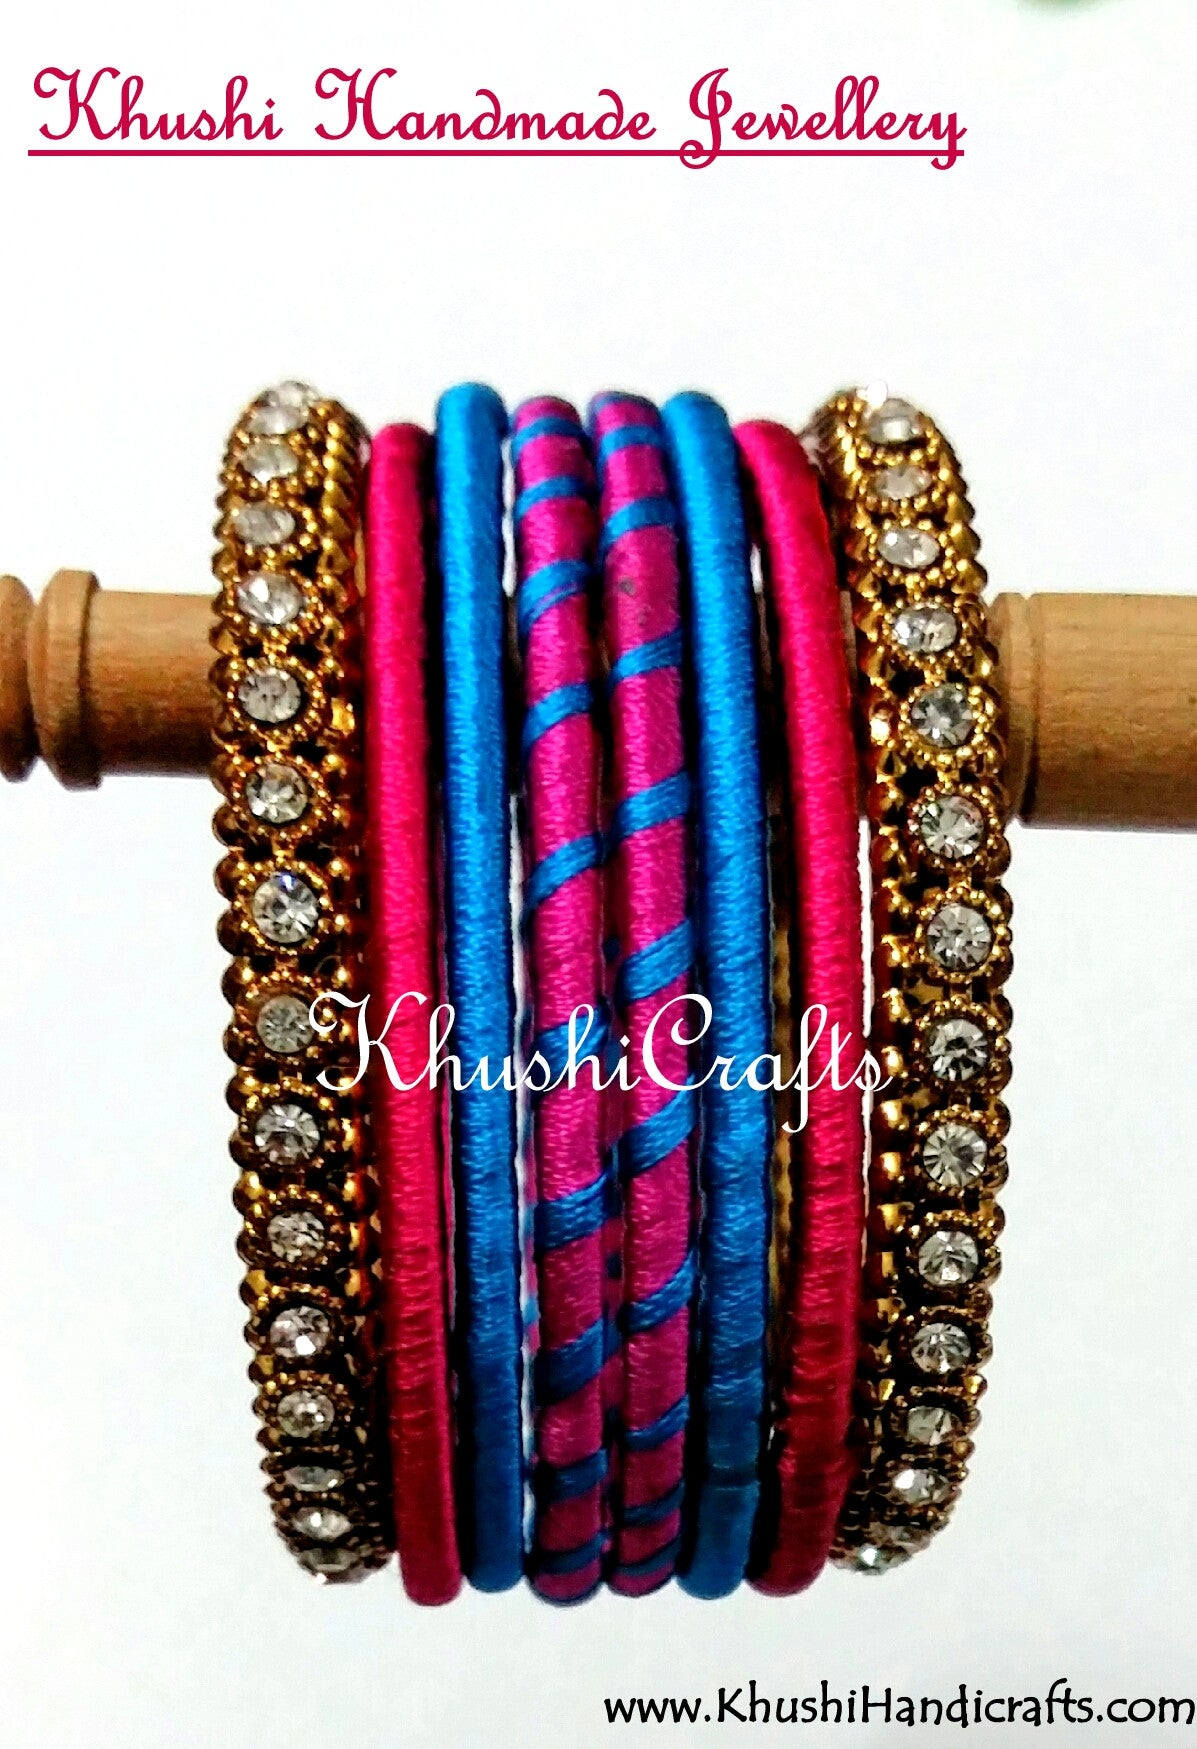 Hand-crafted Silk Bangles in Pink and Blue - Khushi Handmade Jewellery